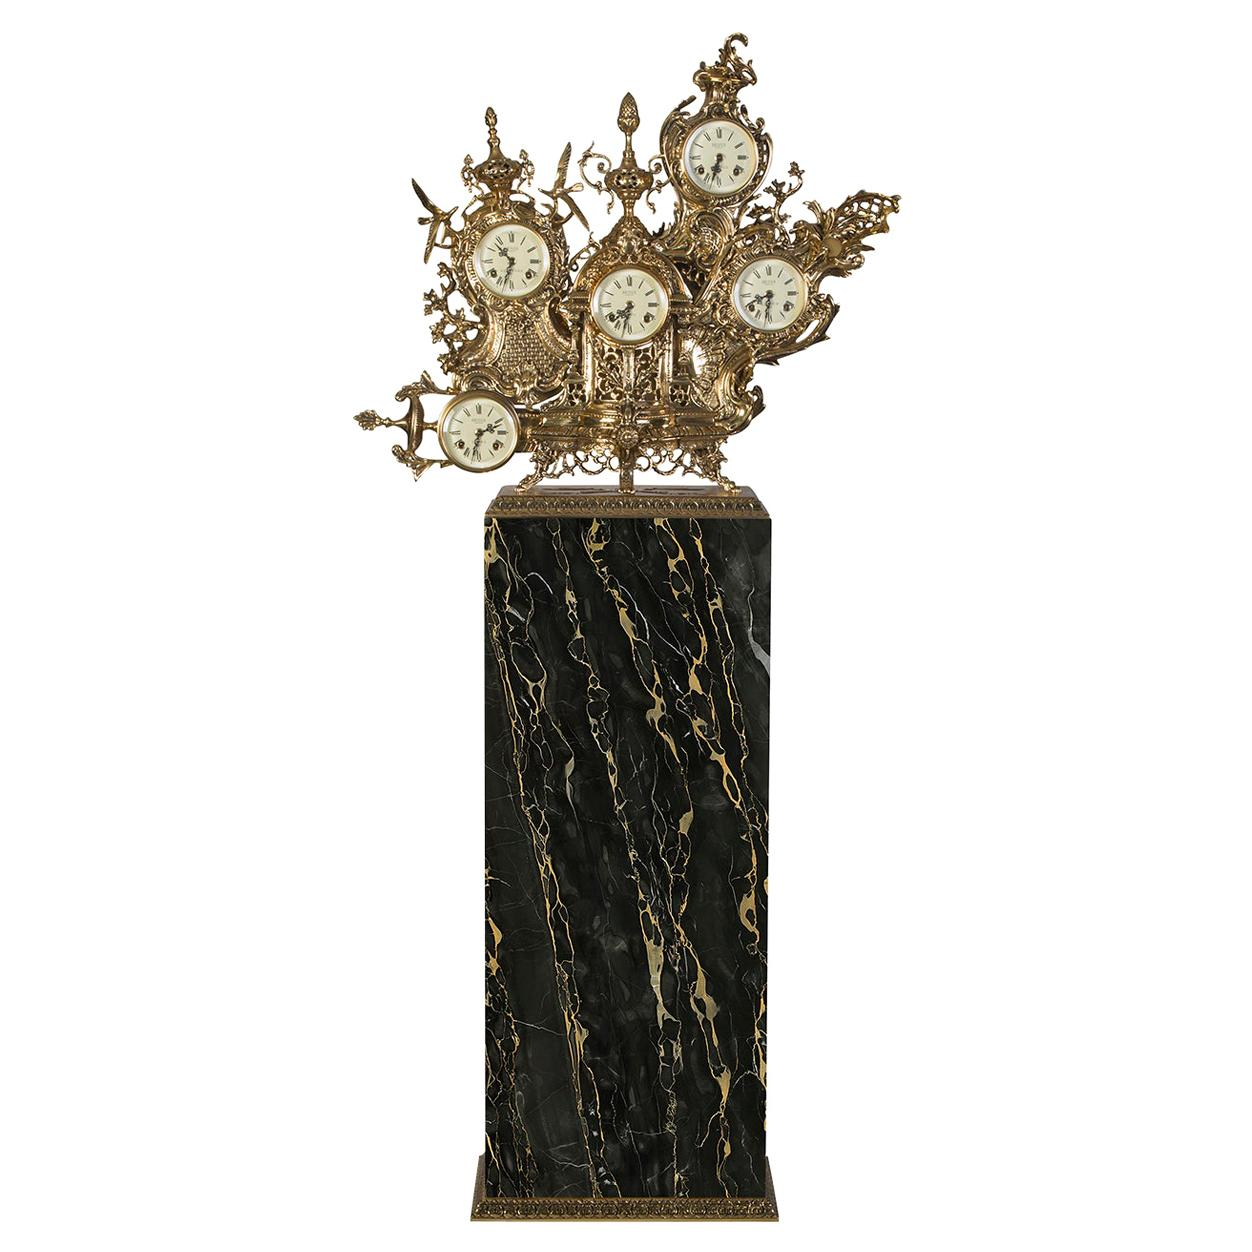 Modern Classic Grandfather Clock in Polished Brass and Black Portoro Marble